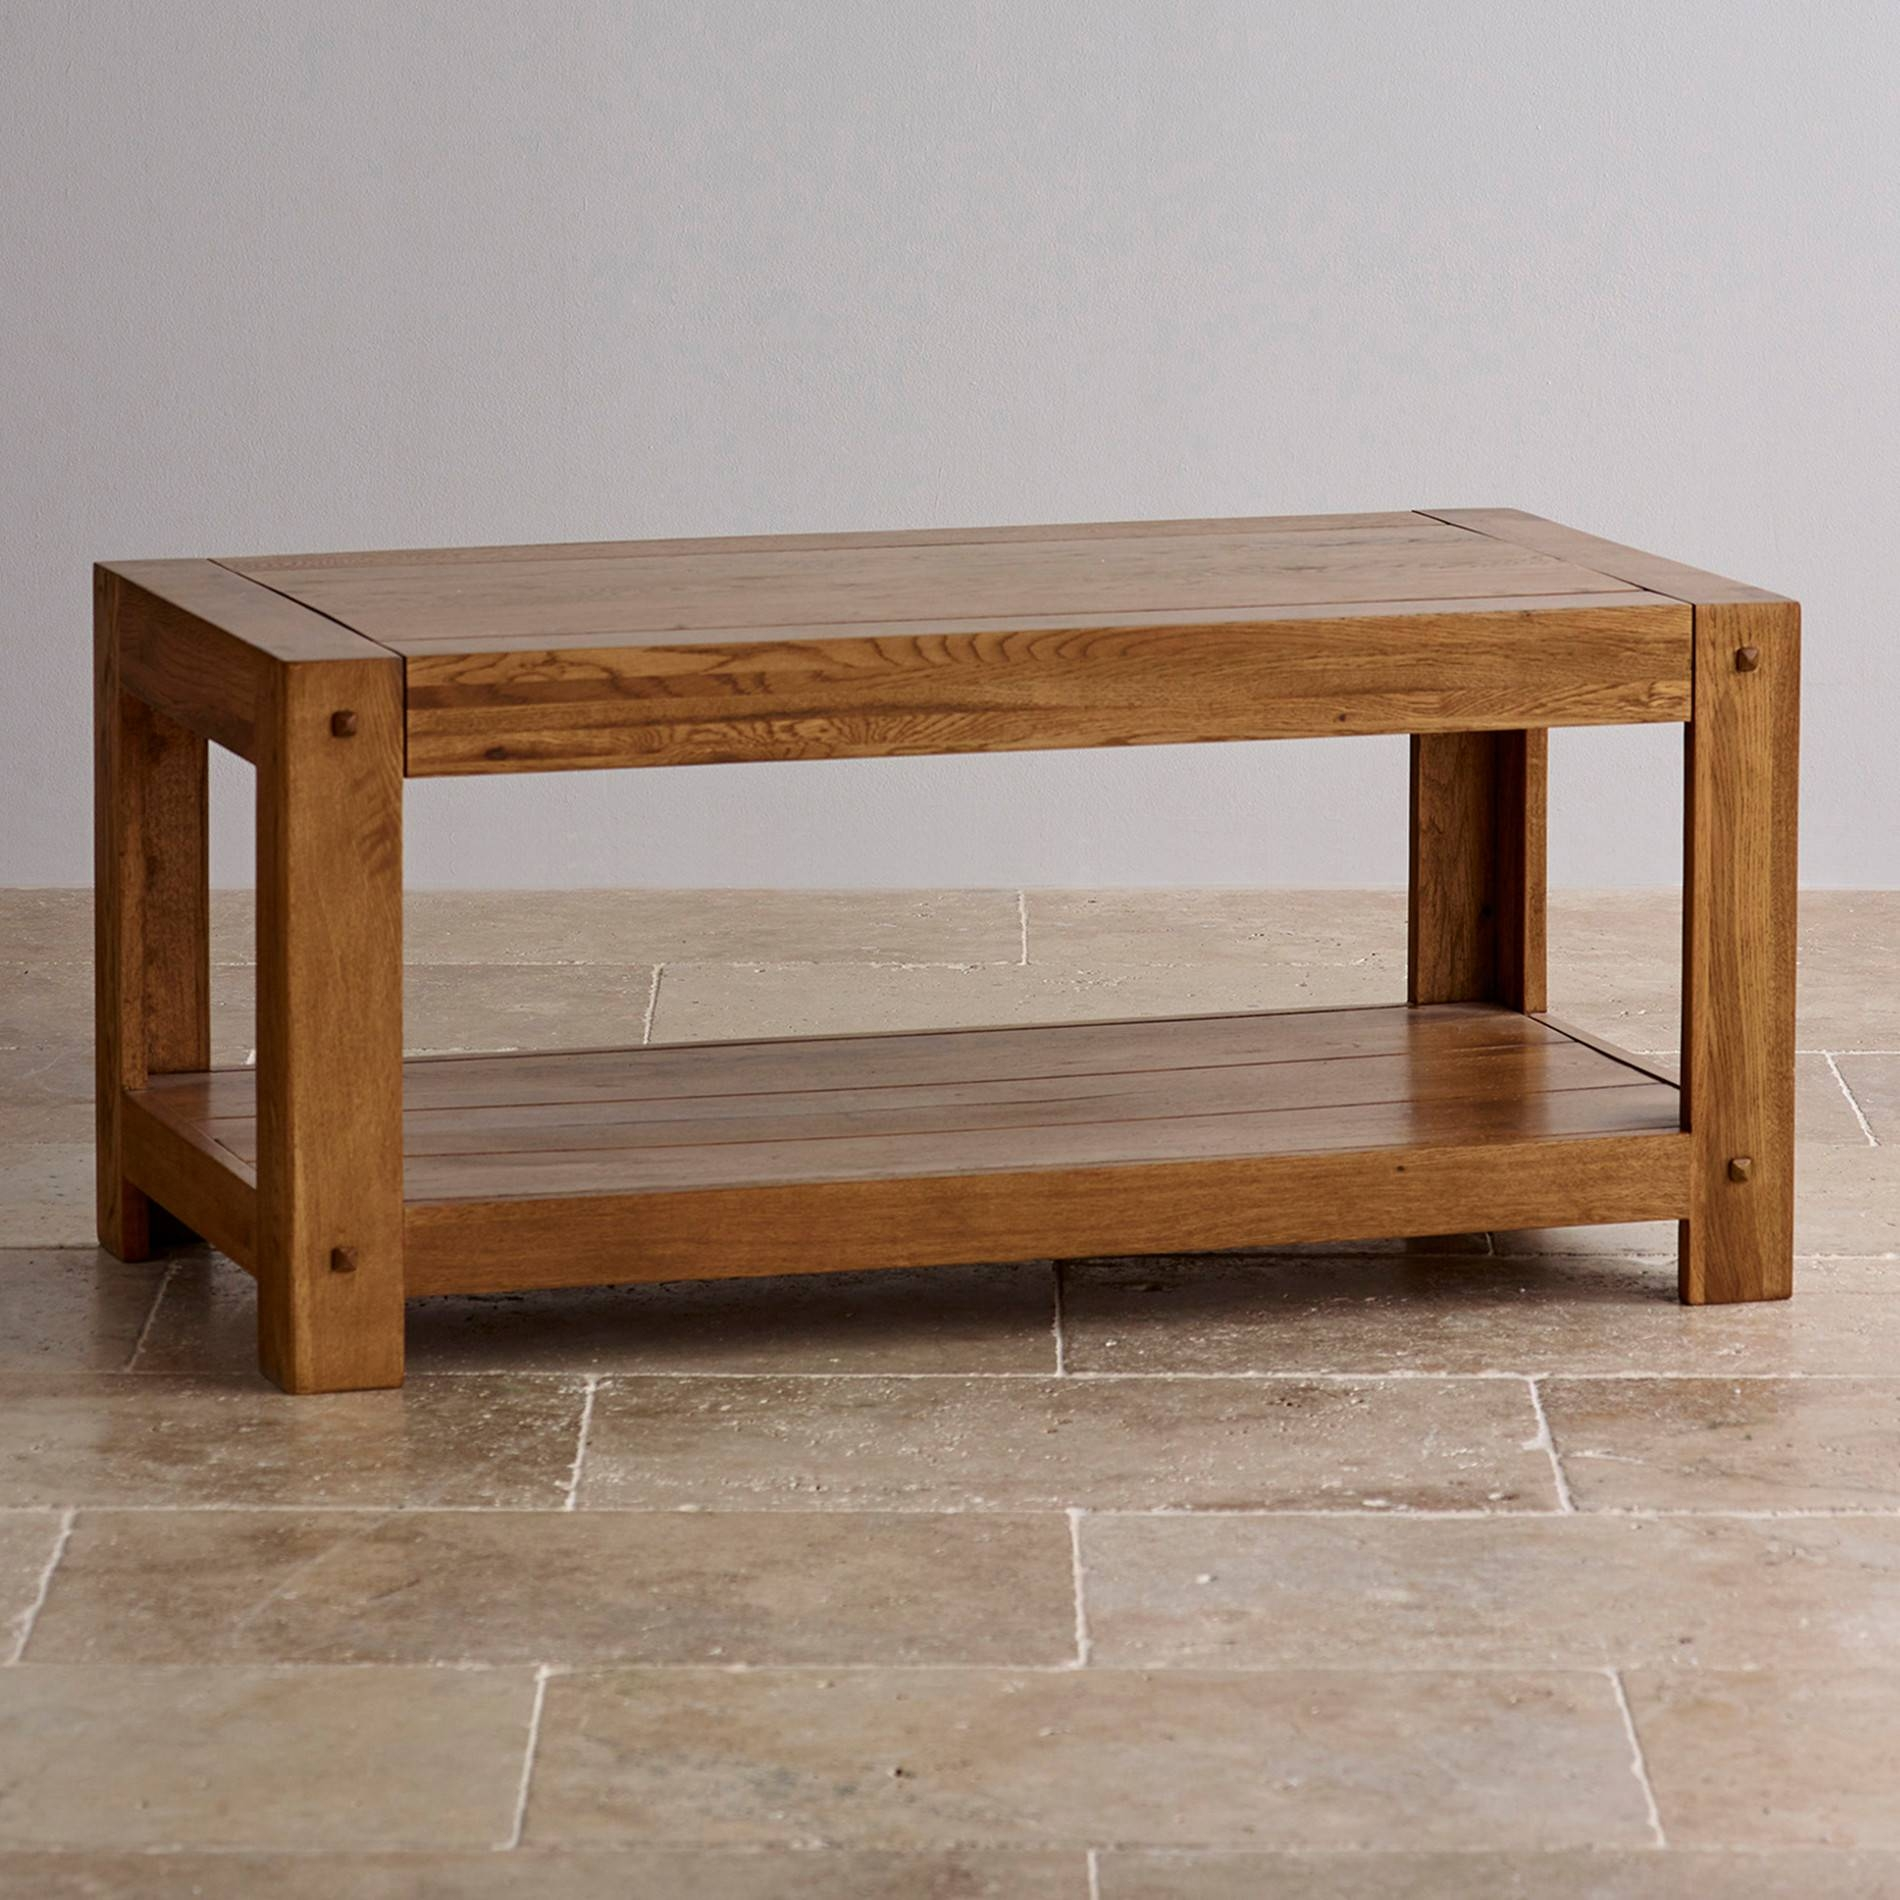 Important Facts That You Should Know About Light Oak Coffee Table regarding Light Oak Coffee Tables (Image 6 of 15)